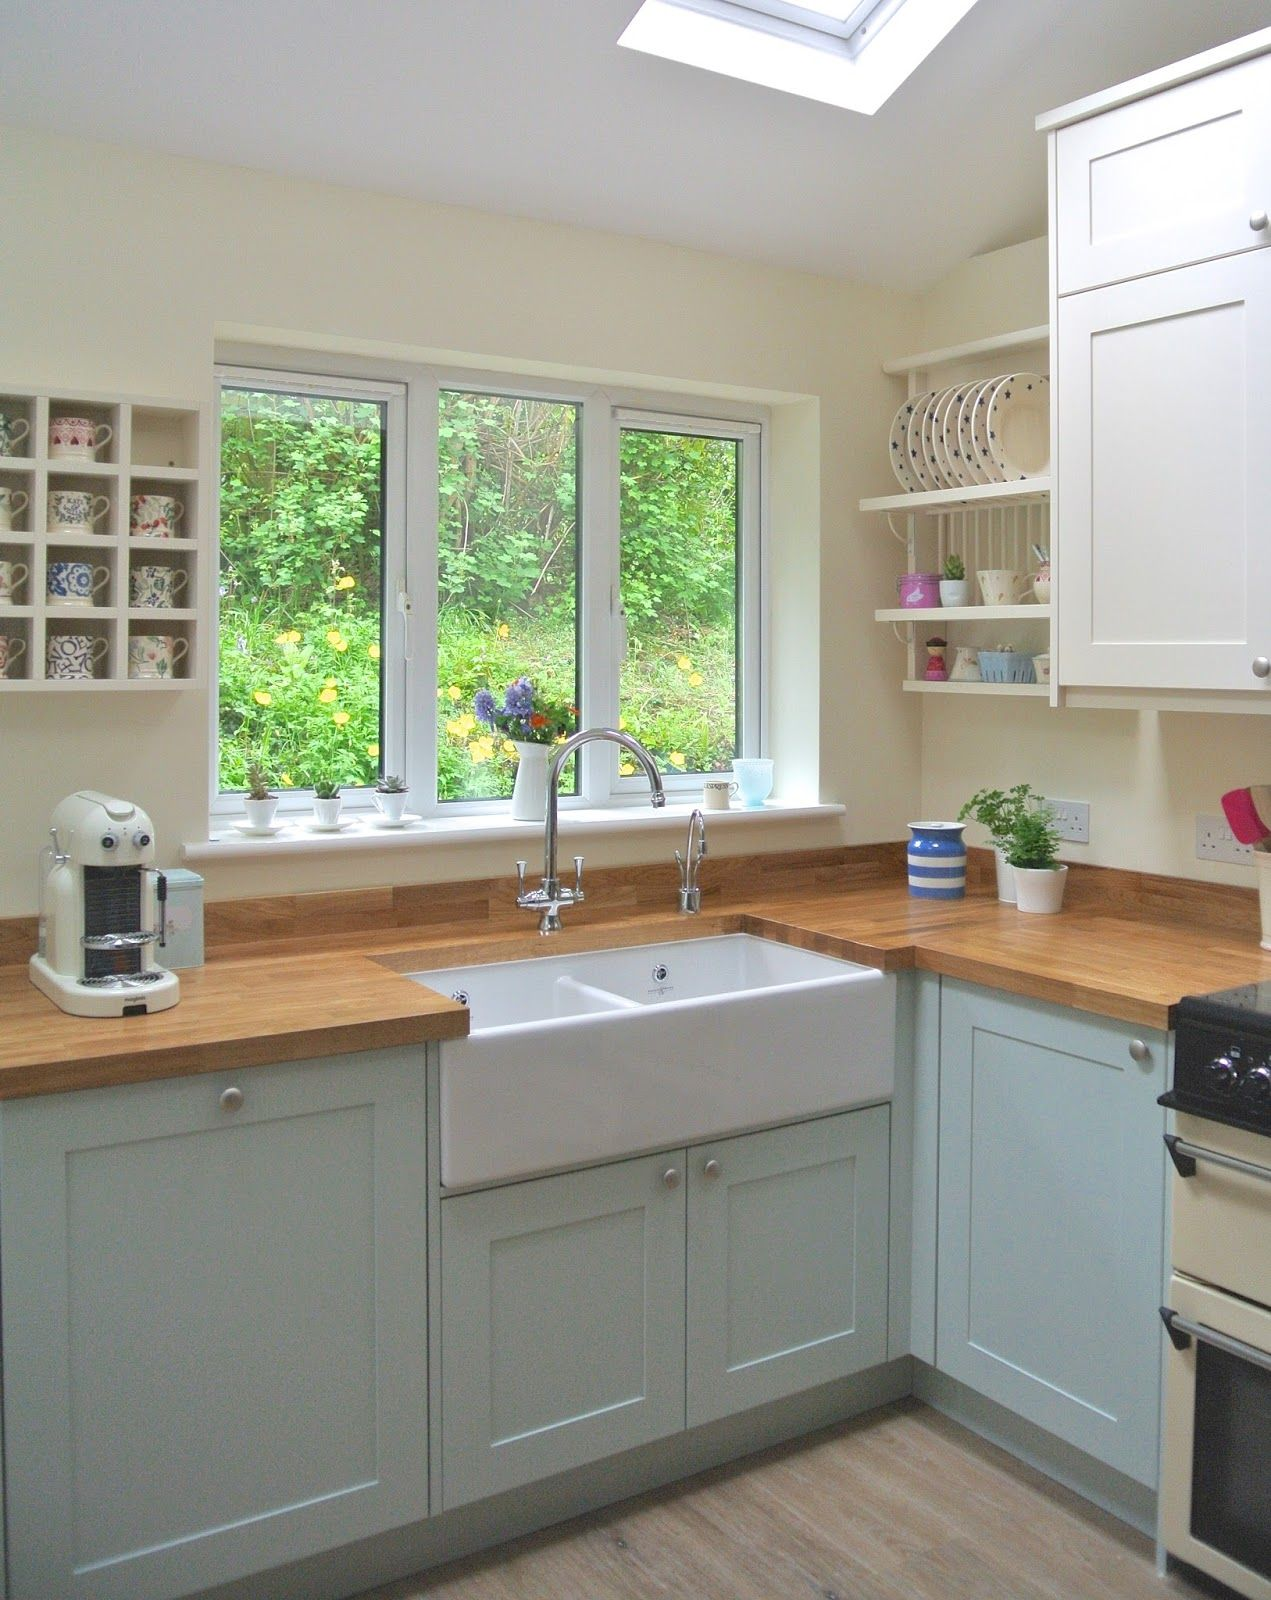 Sew Sweet Violet: kitchen {The countertops and sink} !!! | Home ...